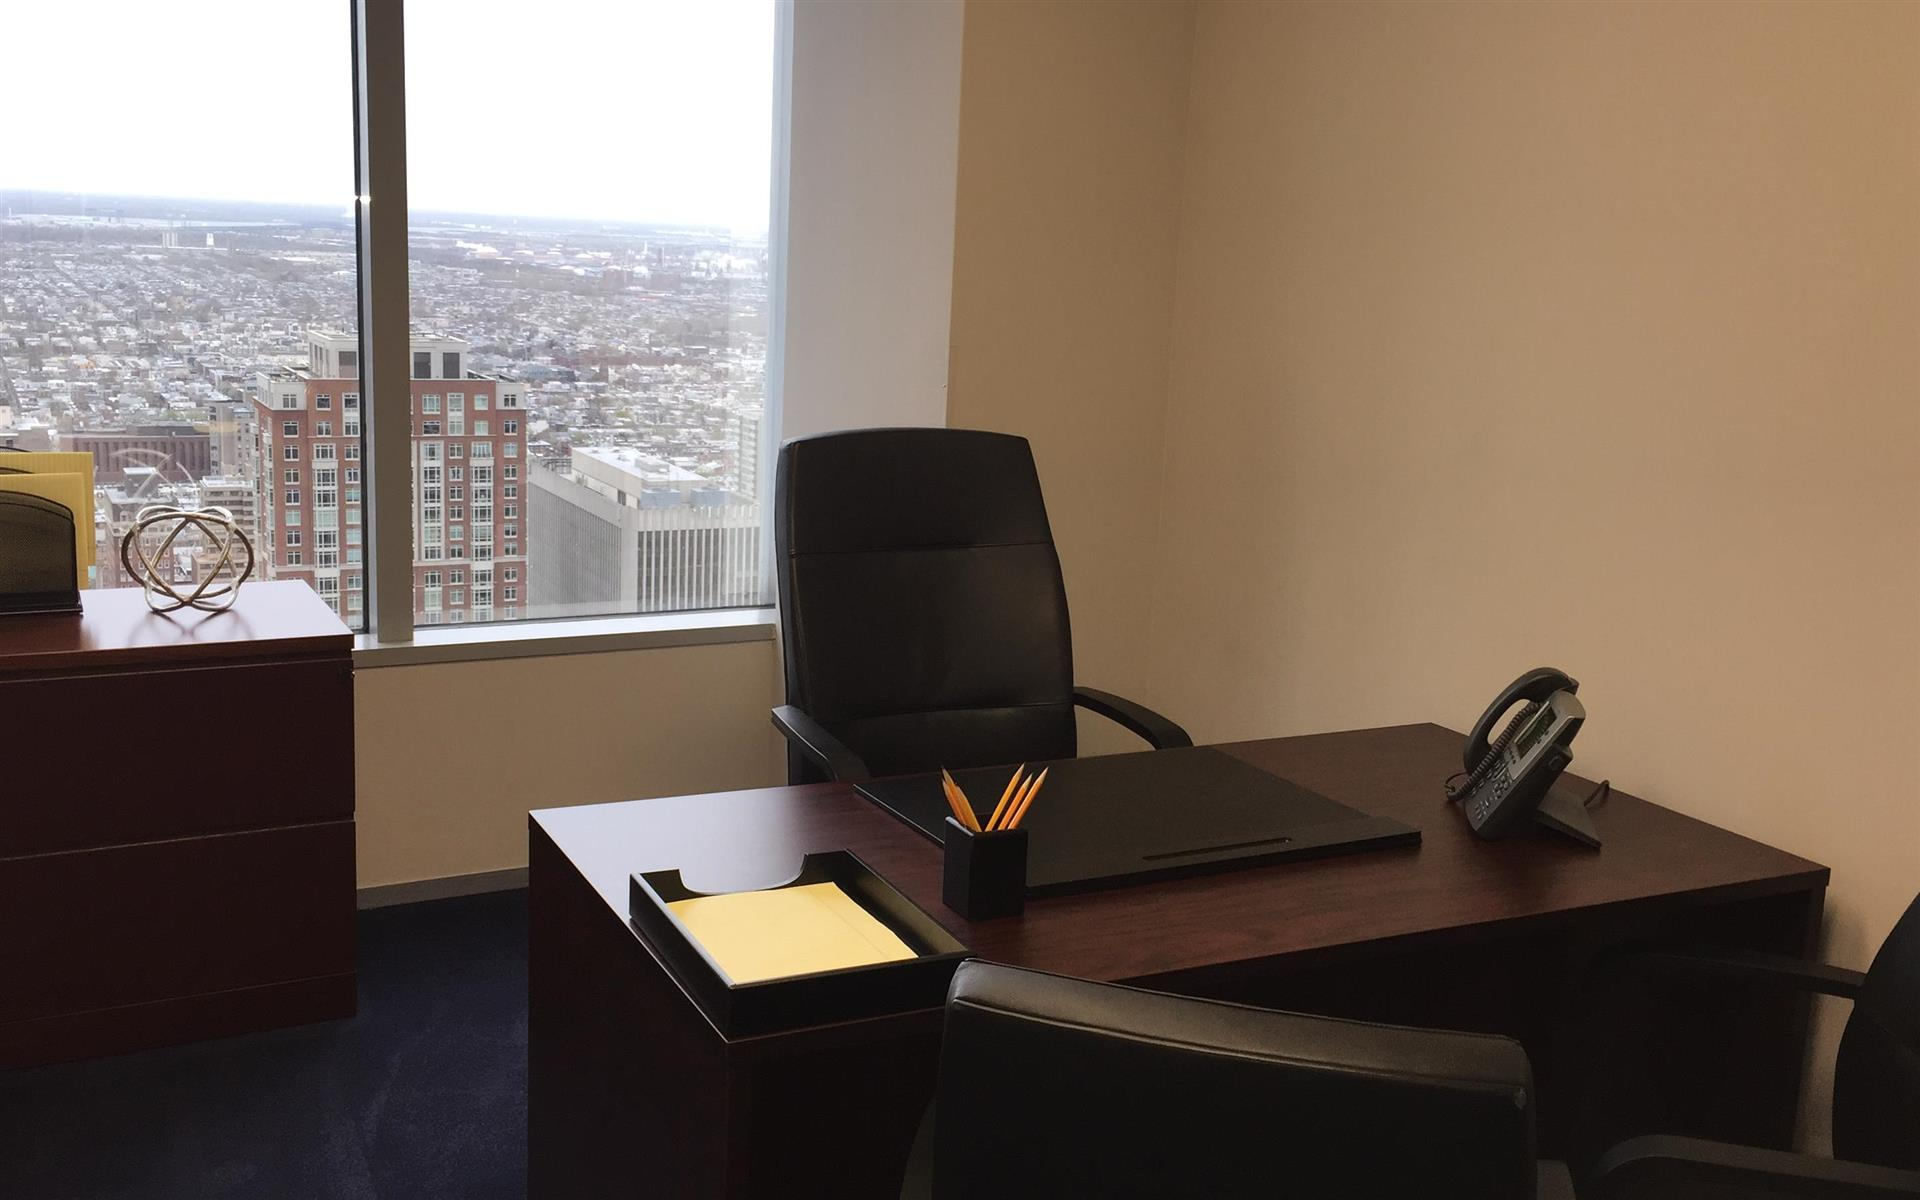 Servcorp - Philadelphia BNY Mellon Center - Private Office with Views